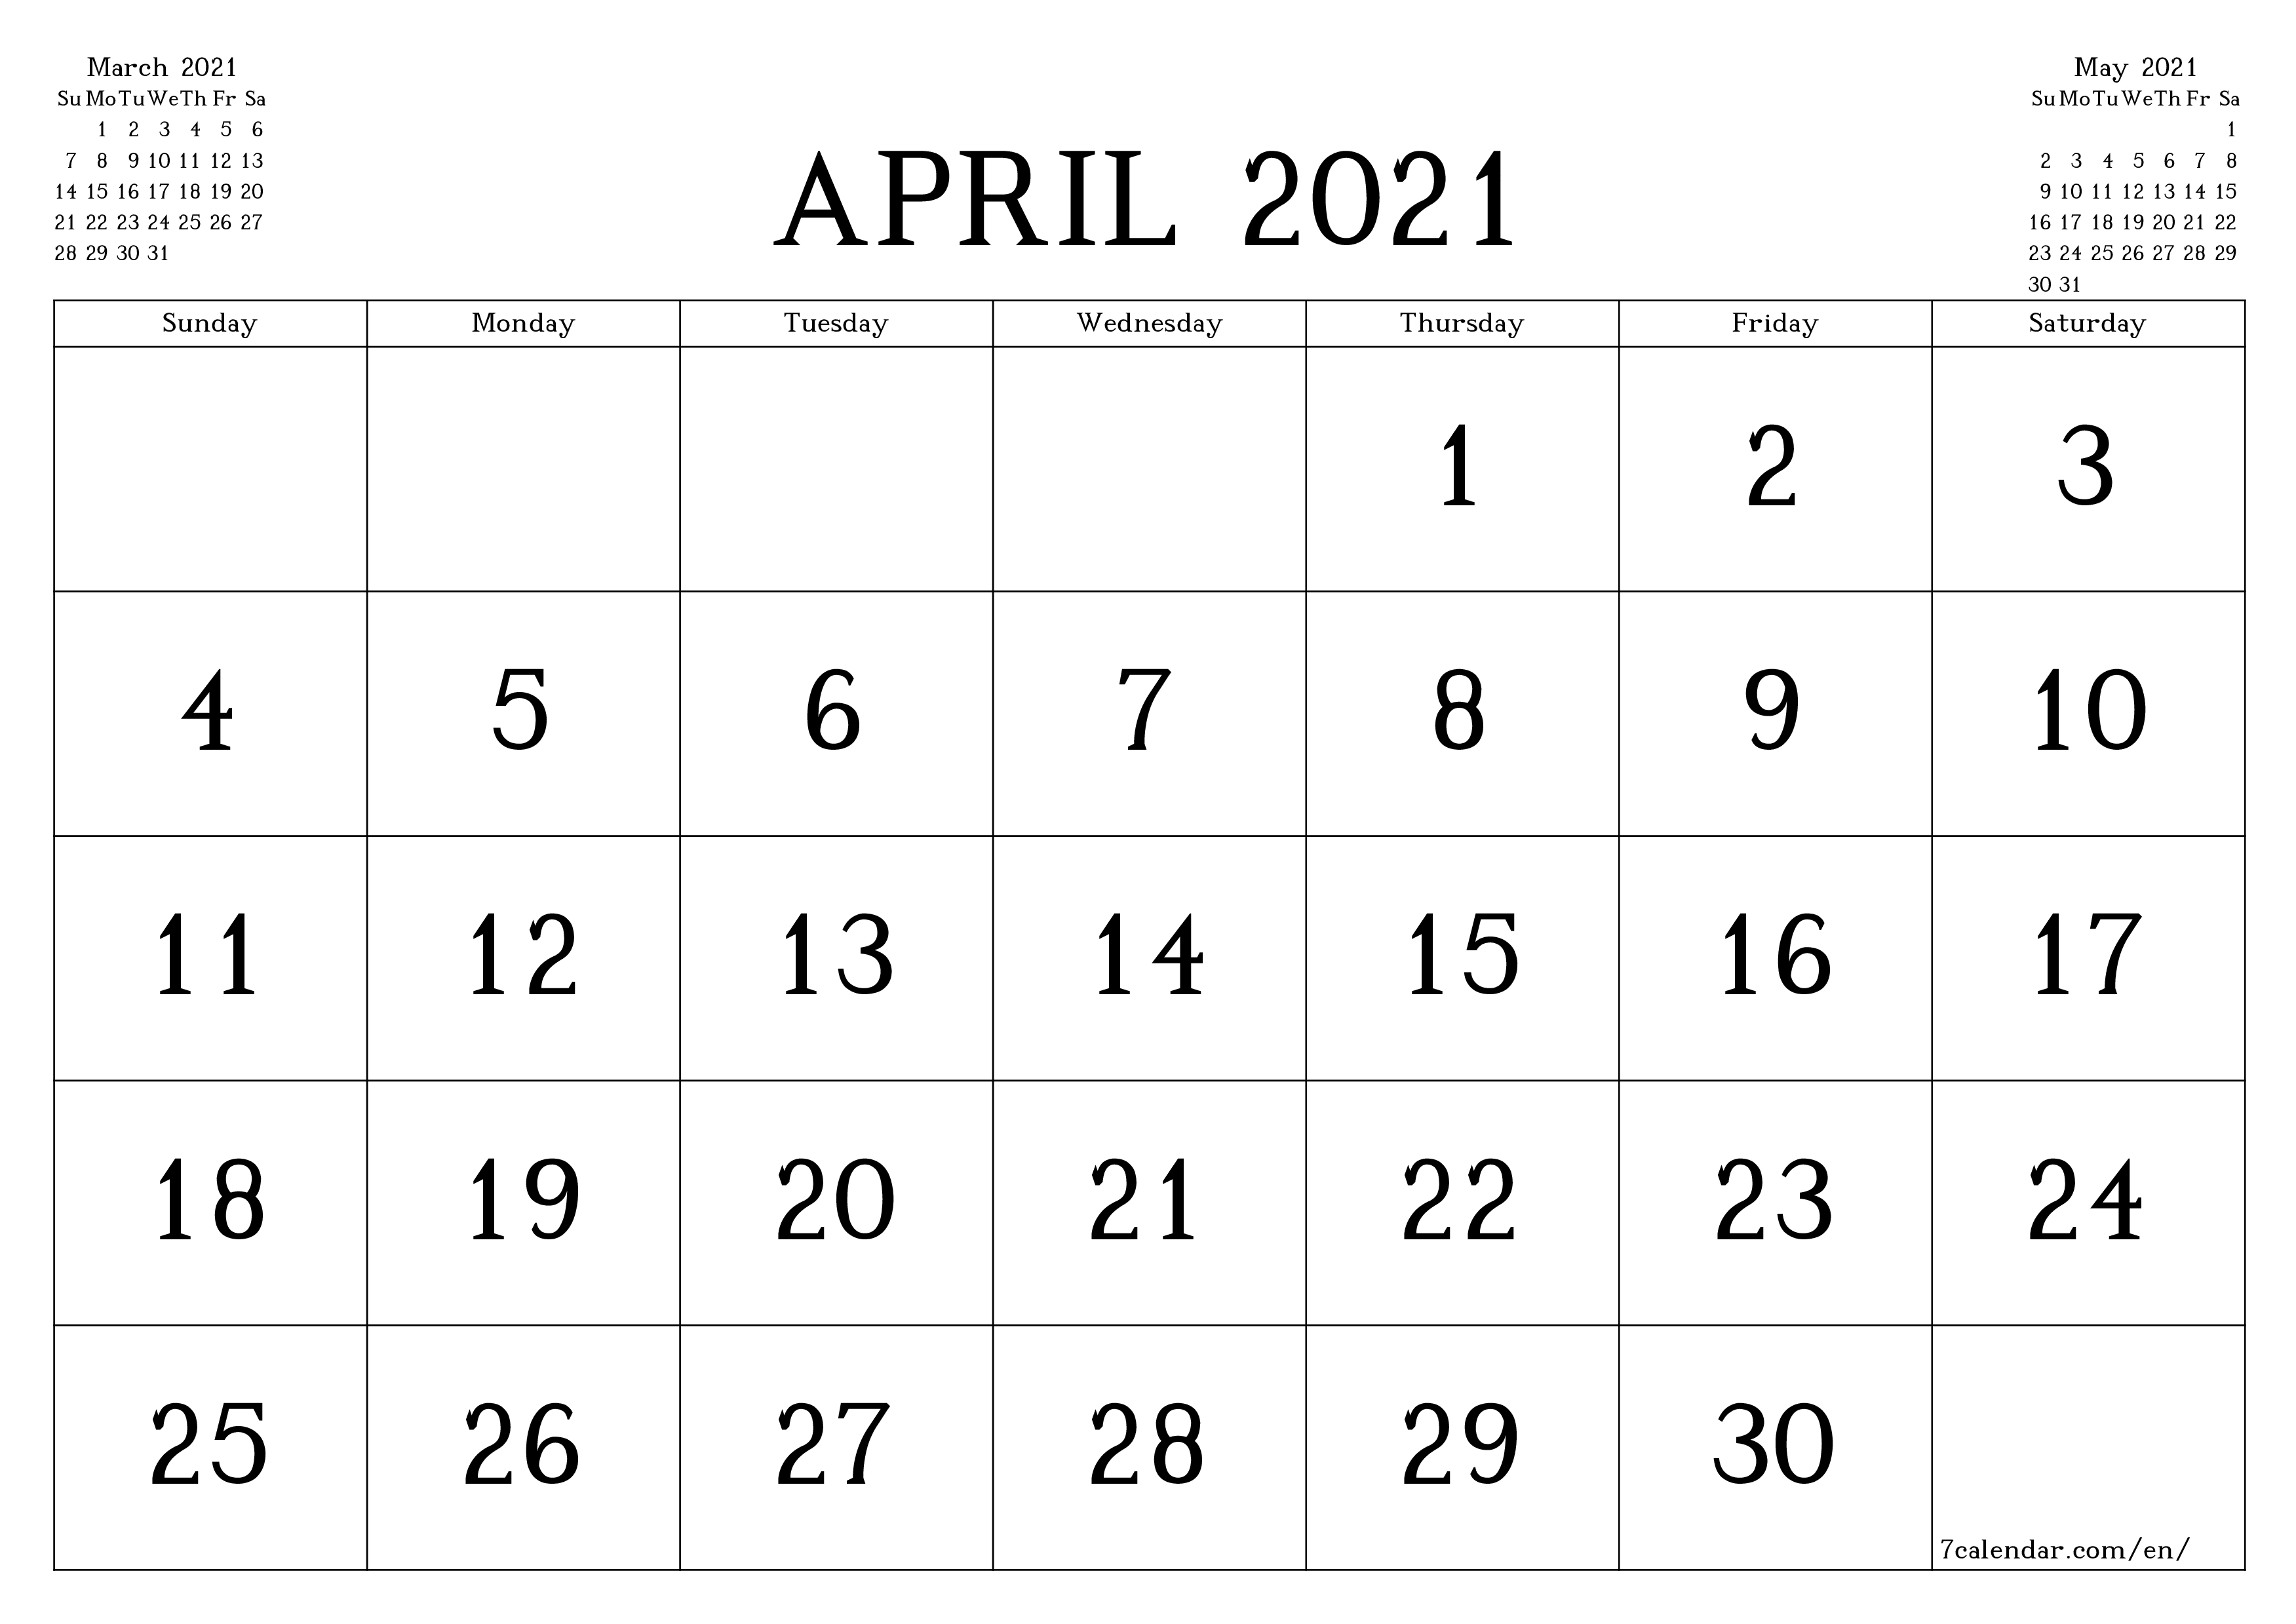 Blank monthly calendar for month April 2021 save and print to PDF  - 7calendar.com